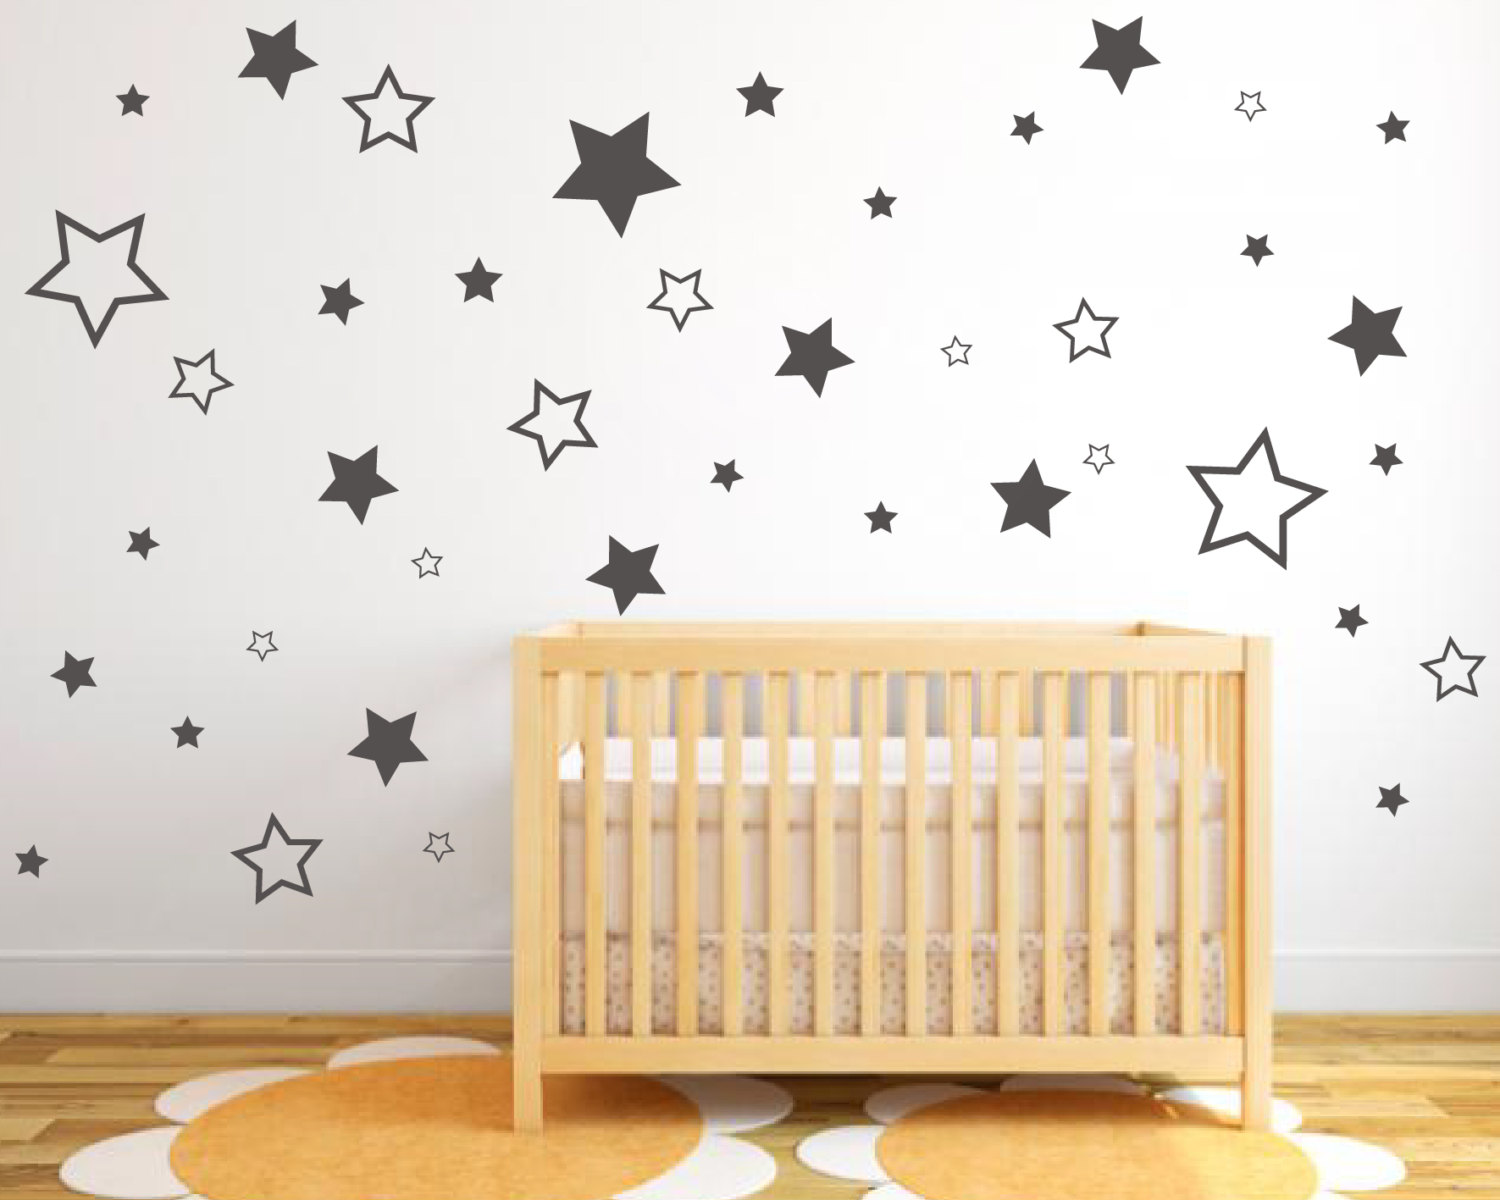 Star Wall Decor Ideas: Pack Of Star Stickers In Various